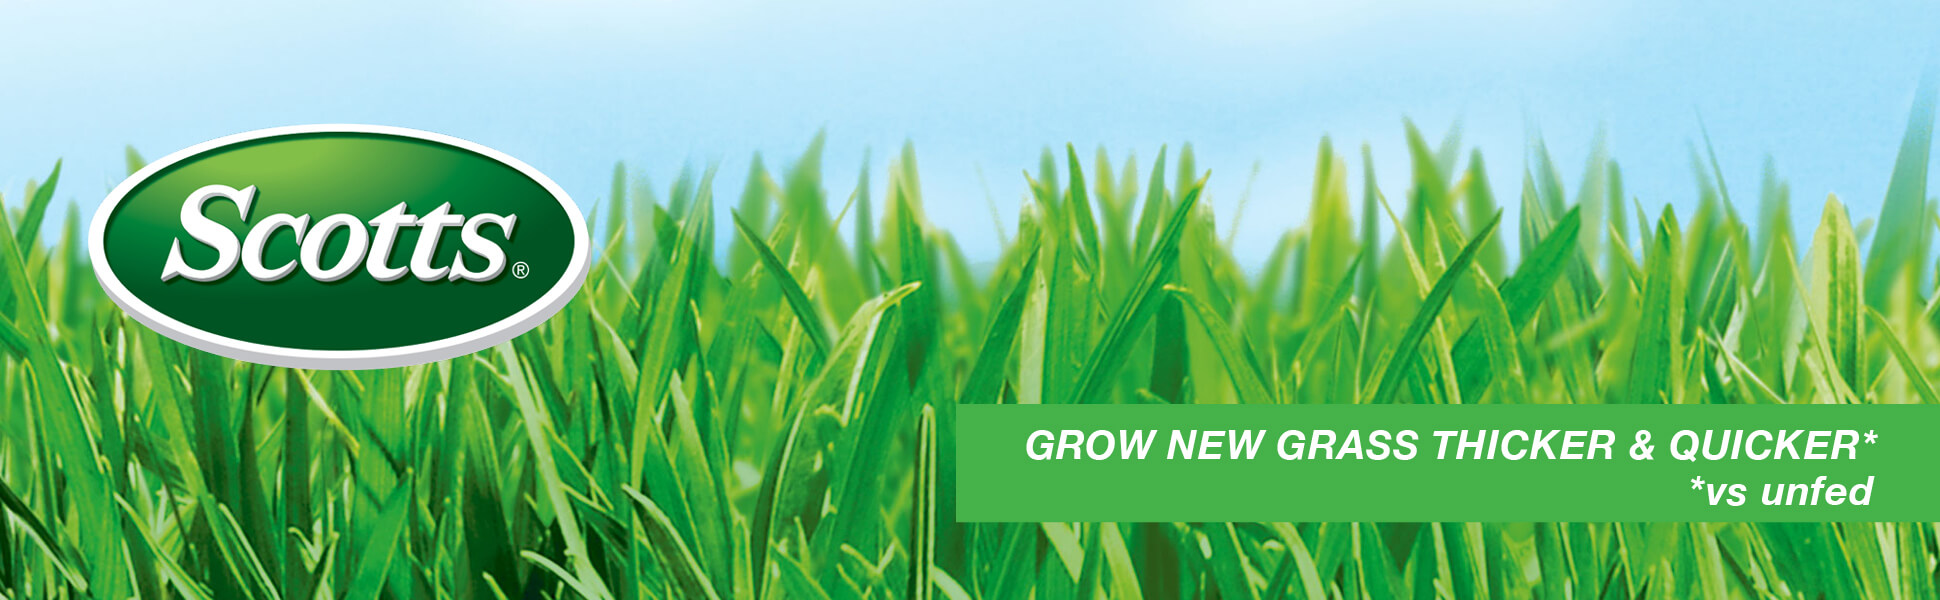 Scotts logo over green grass with caption- Grow new grass Thicker and quicker *Vs Unfed